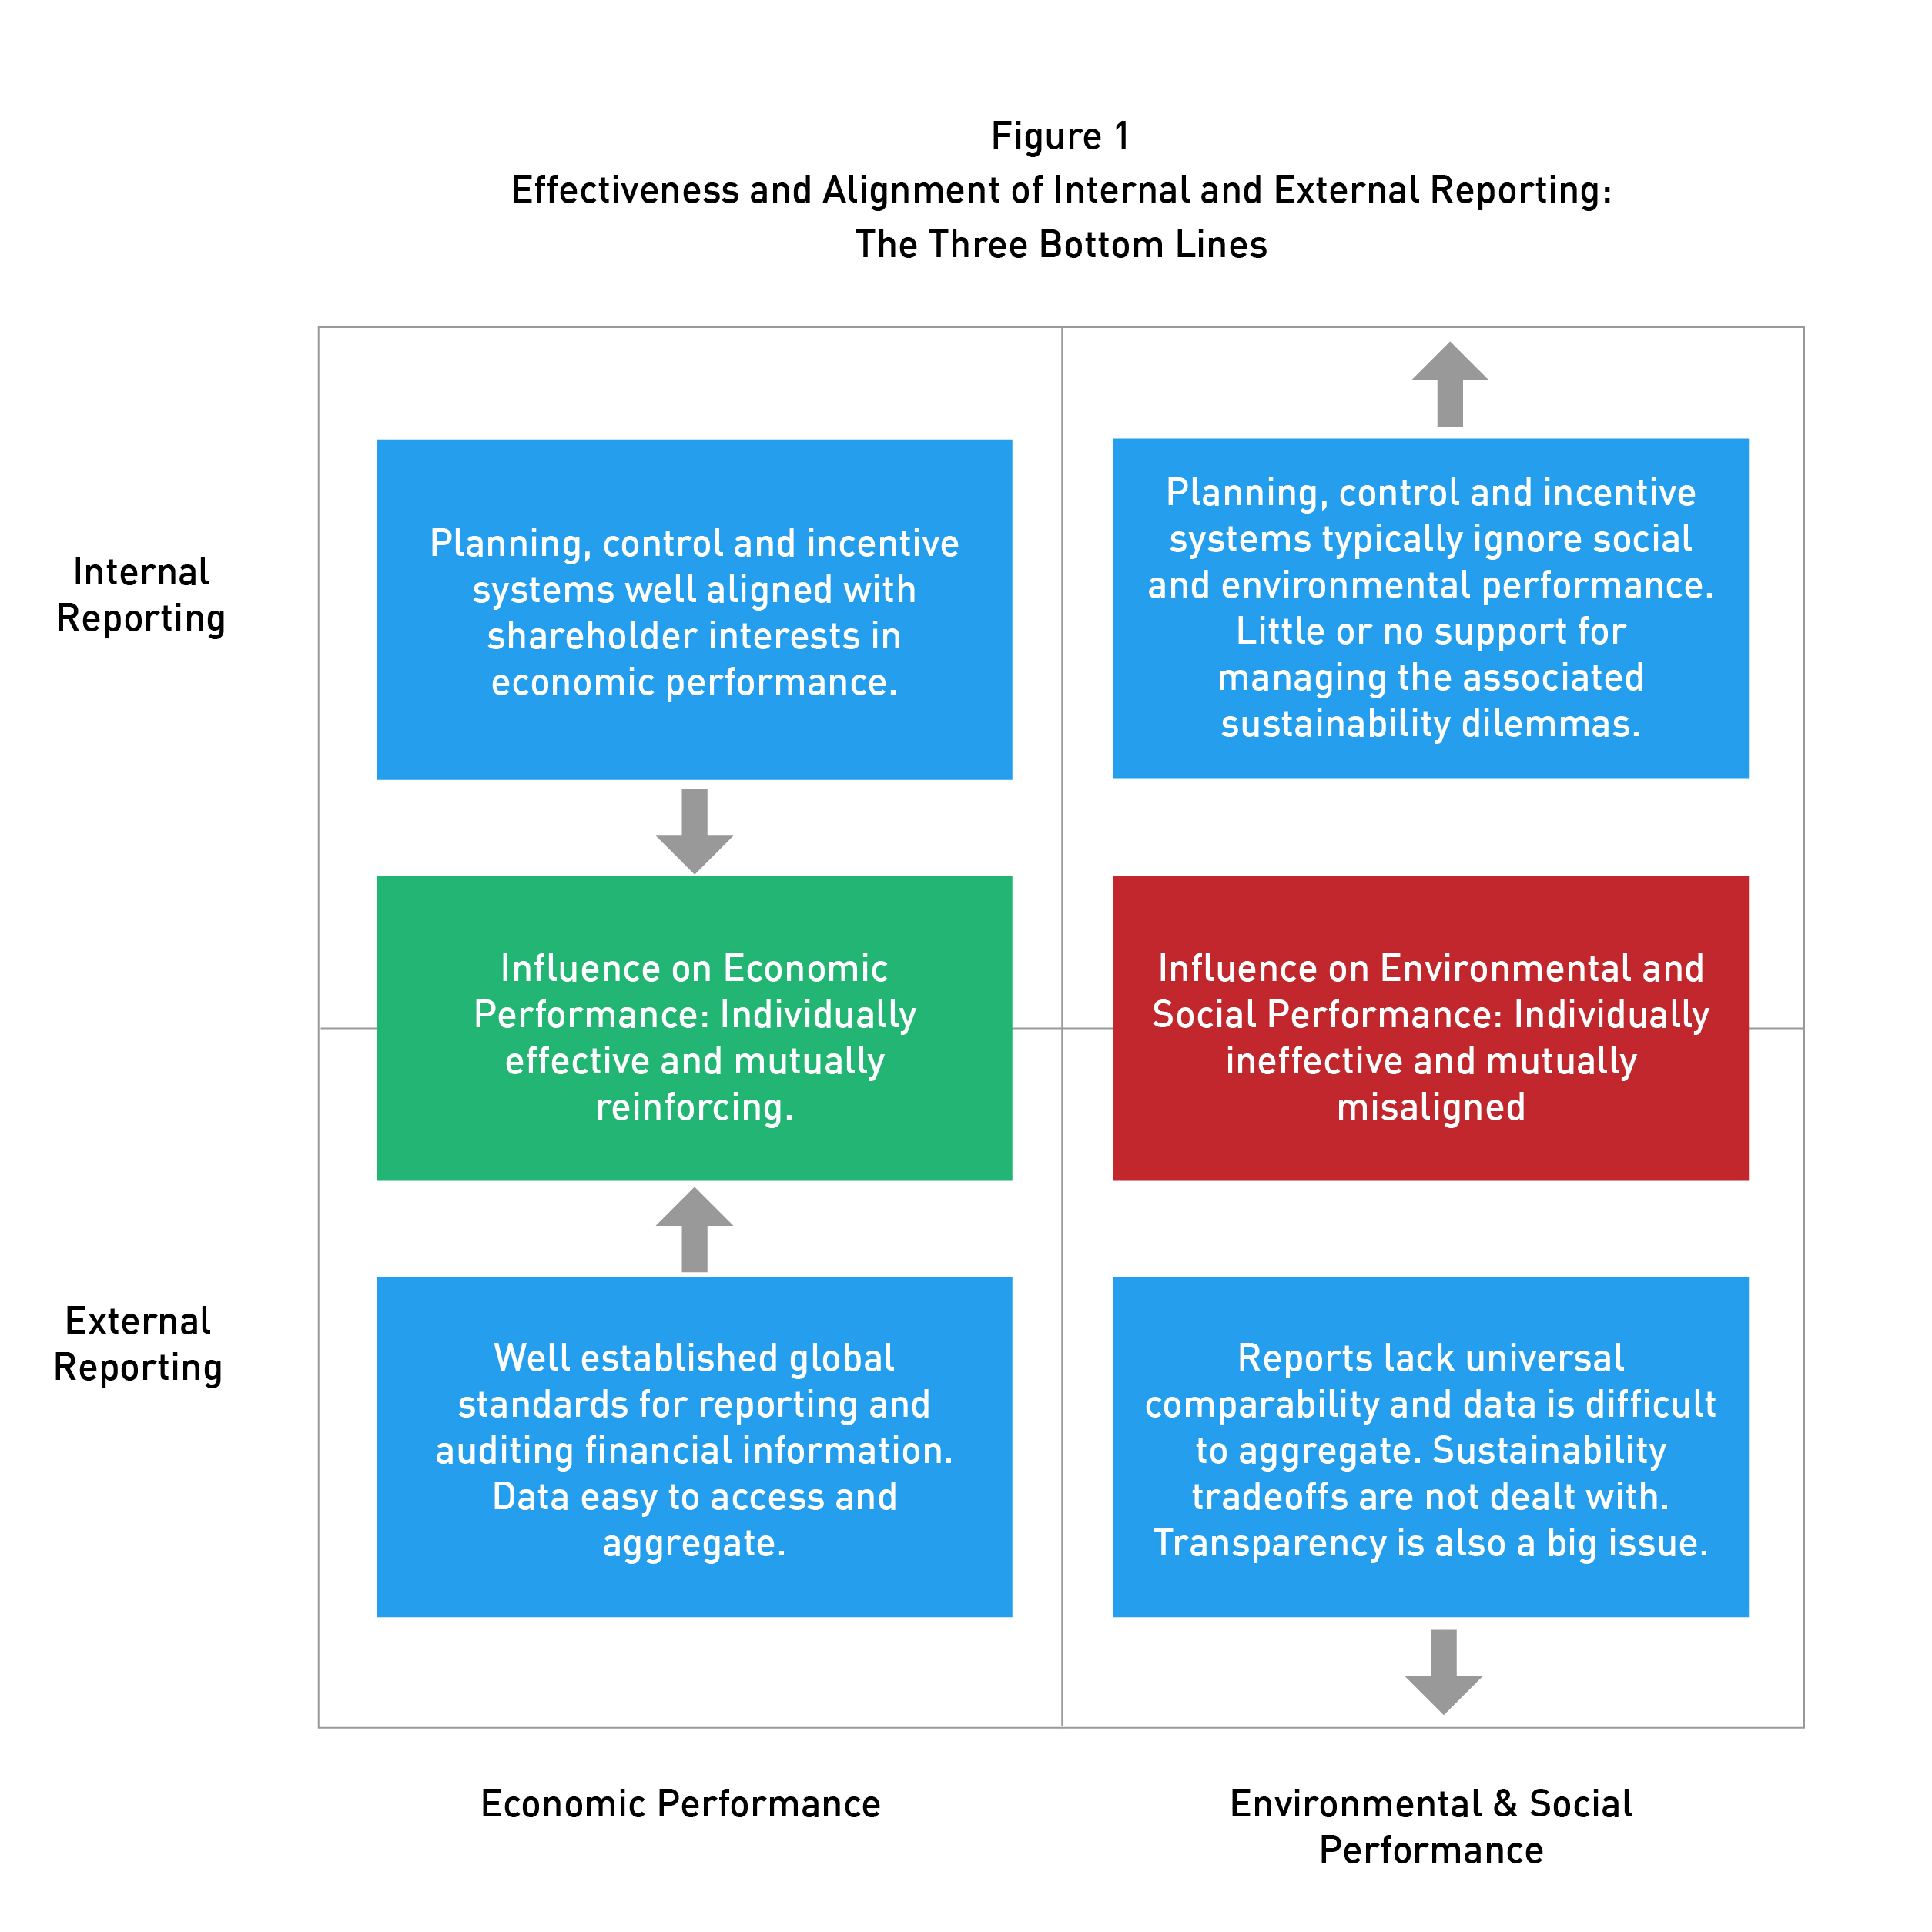 Free up sustainability reporting to boost the triple bottom line